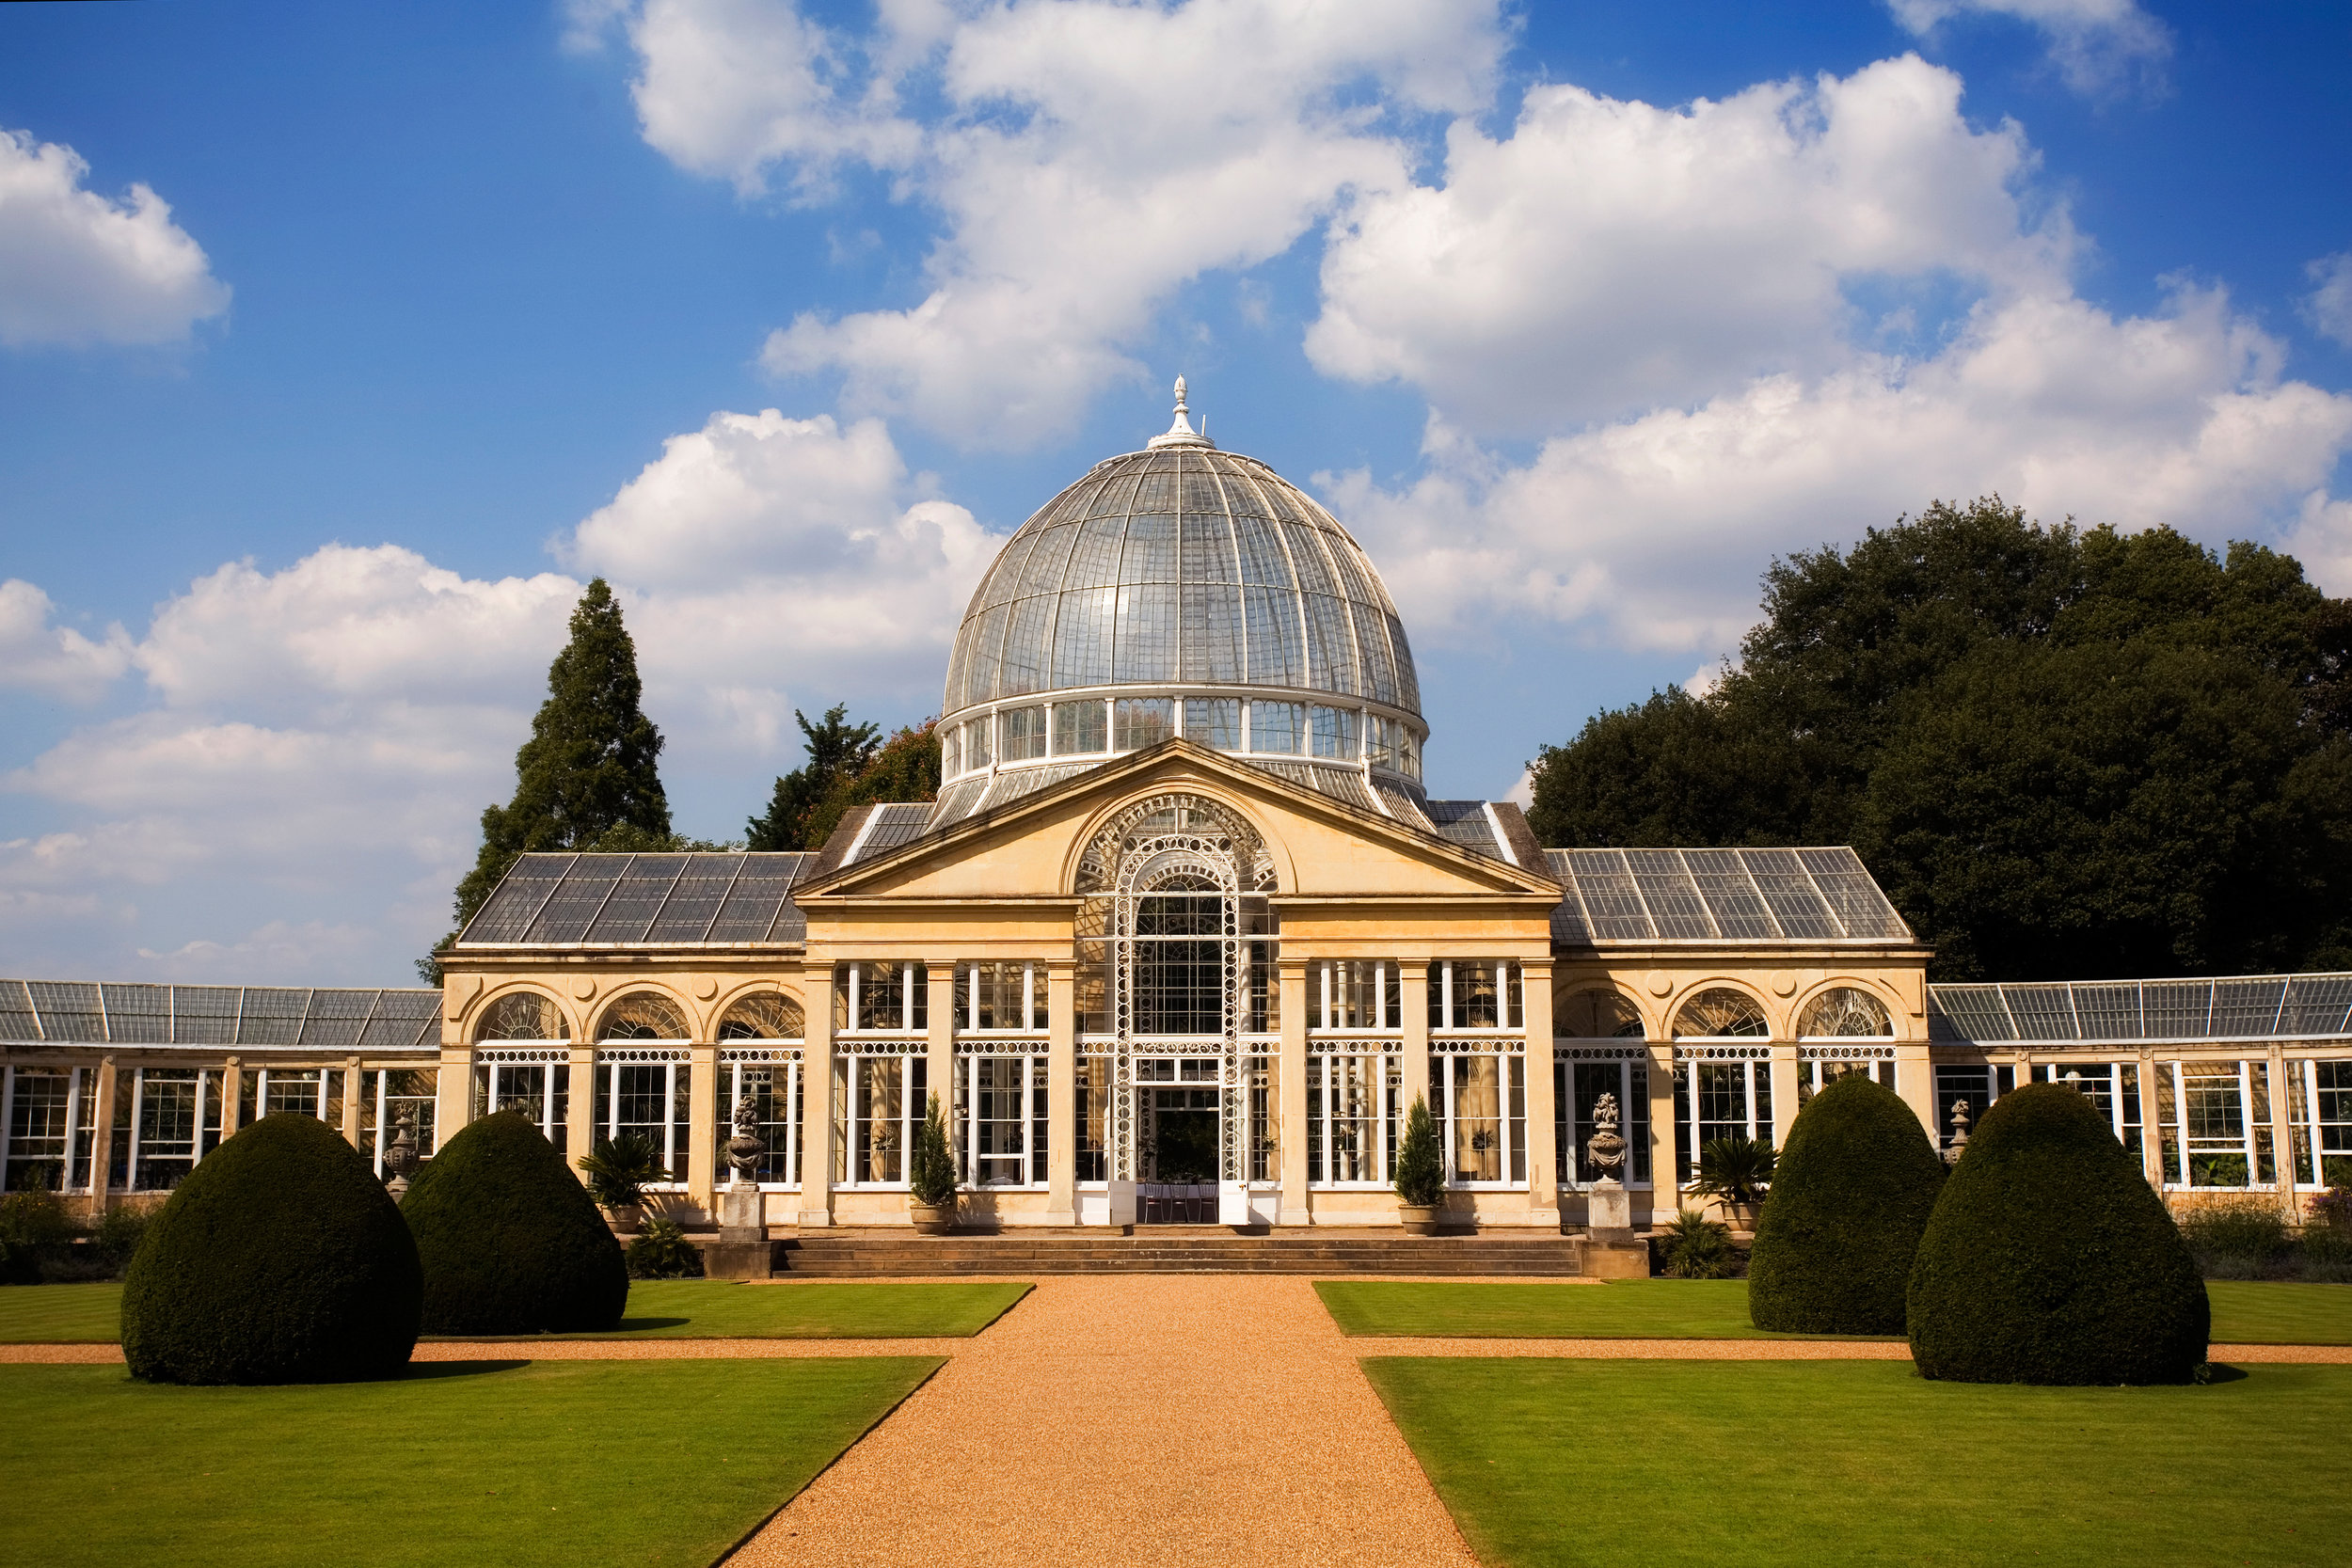 Syon-Park-grand-conservatory - fionas wedding photography.jpg